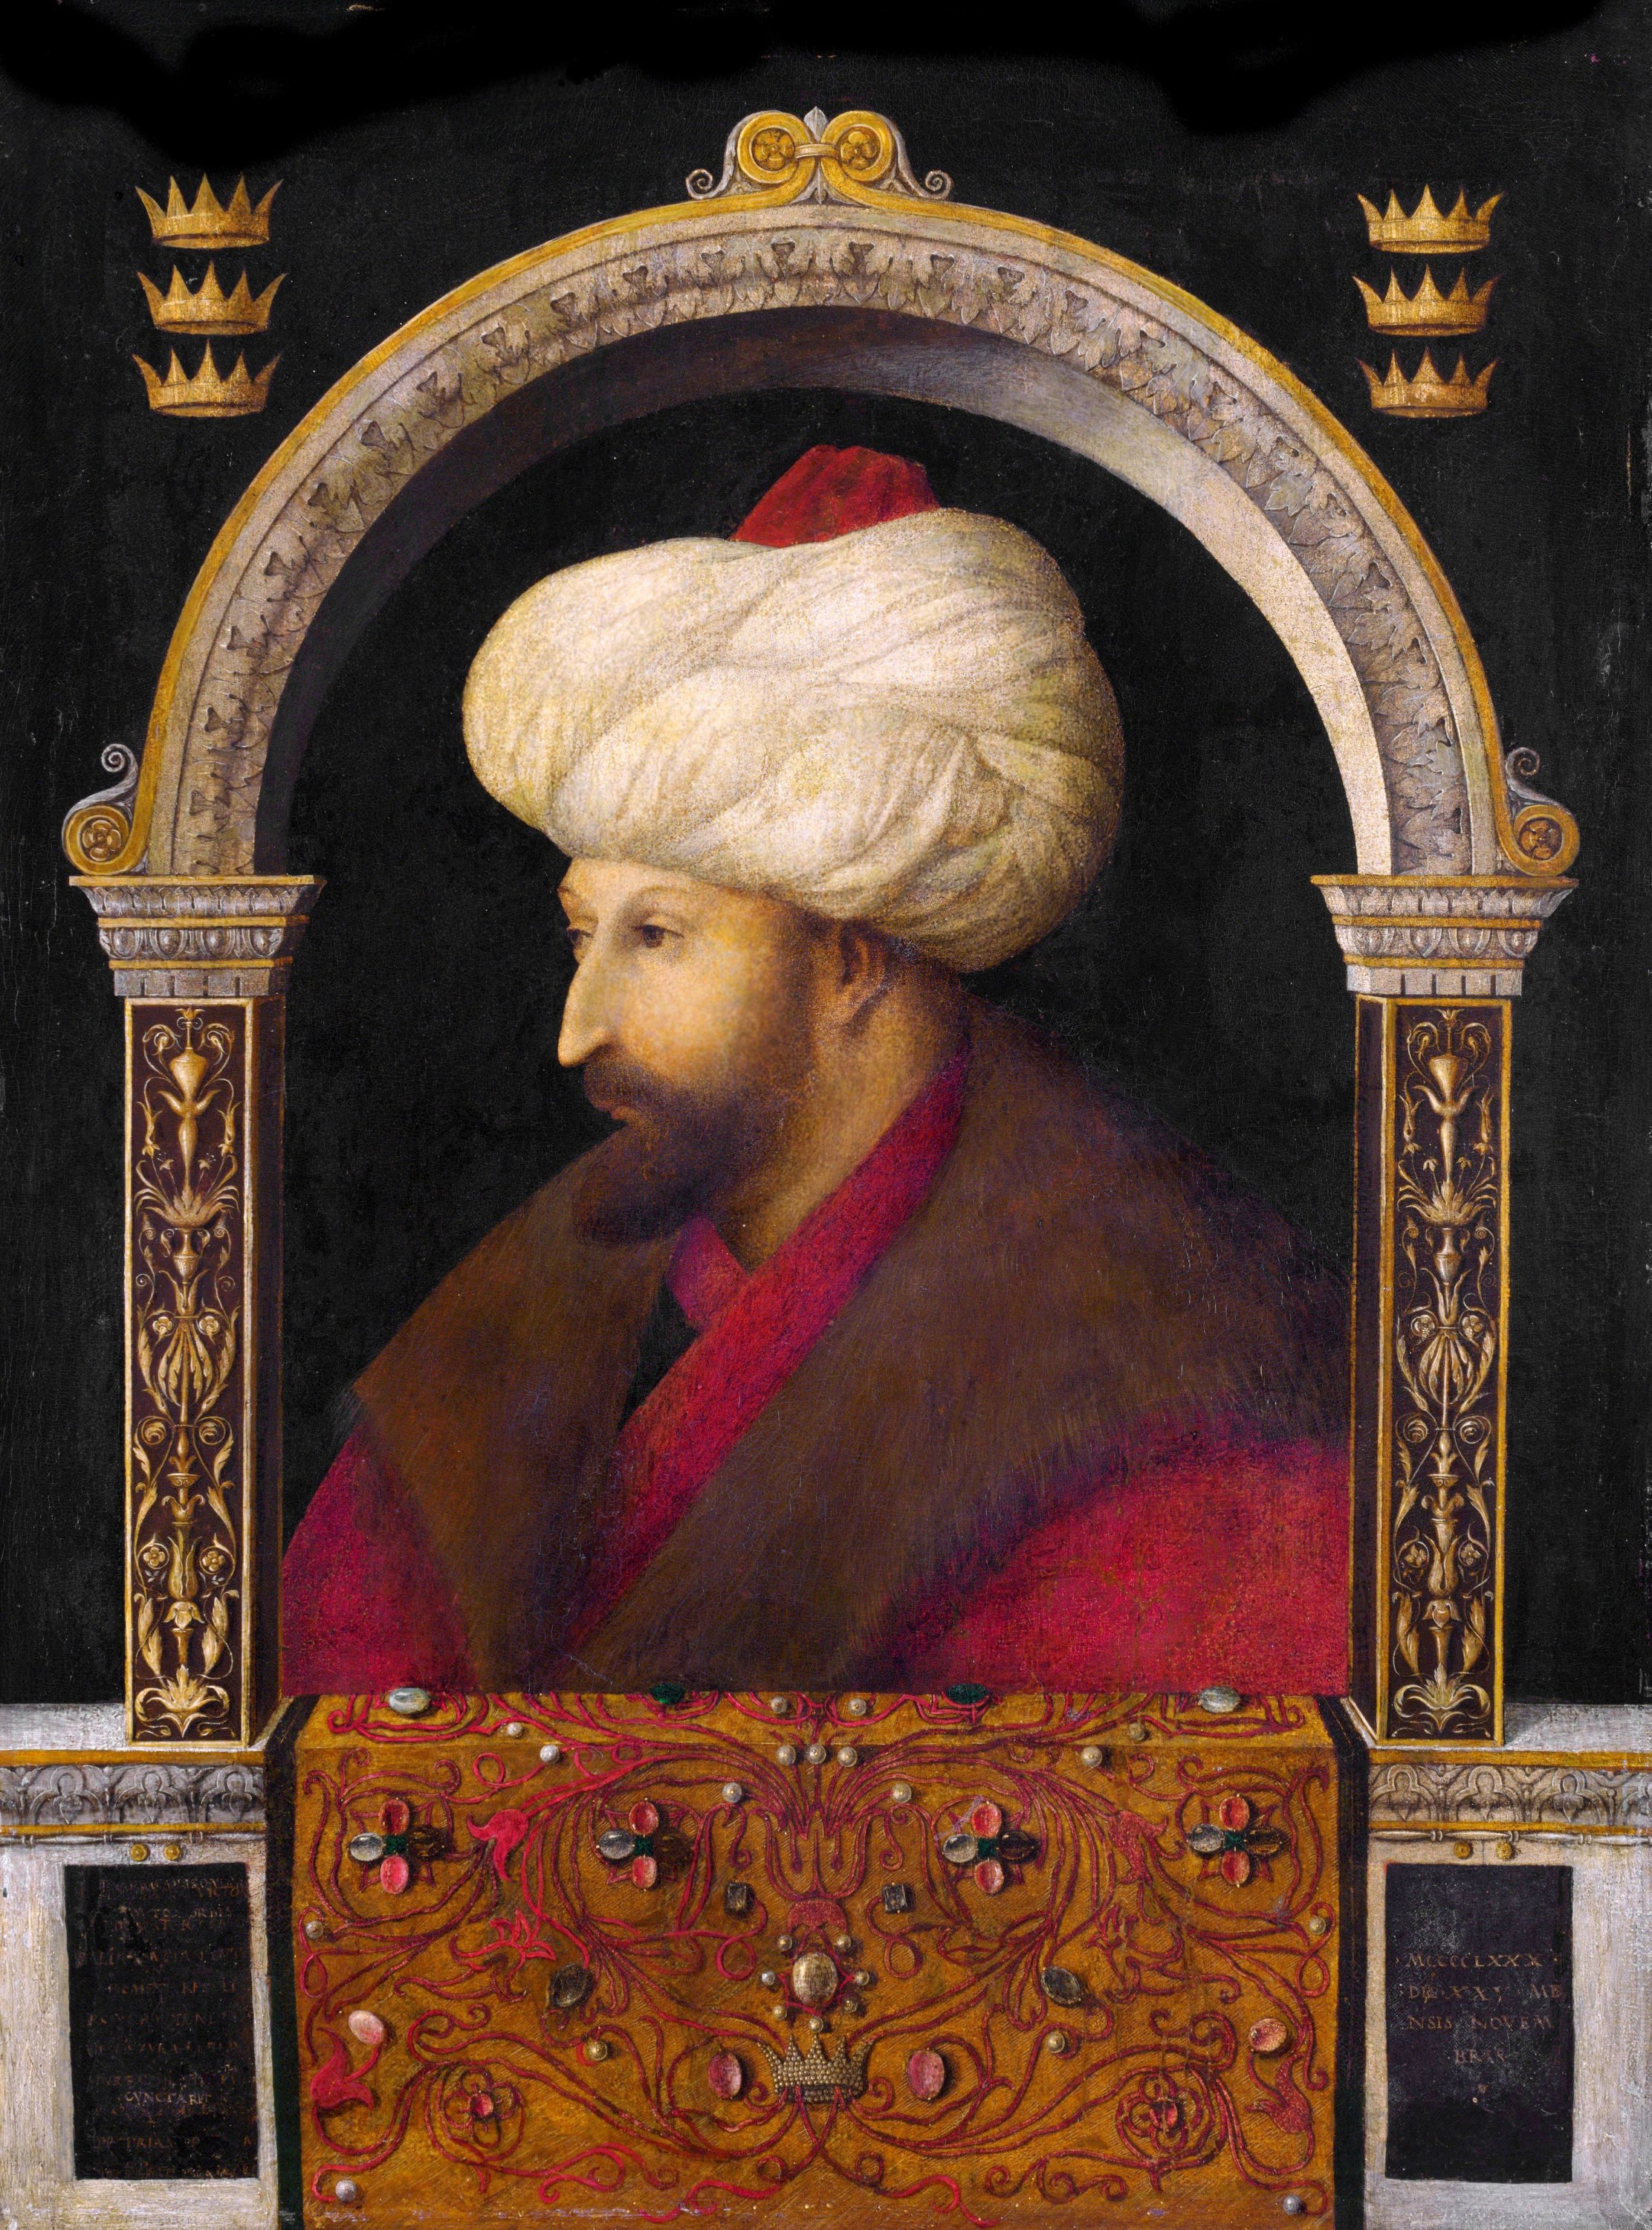 Portrait of Sultan Mehmet II, 1480, by Gentile Bellini (1429-1507), oil on canvas. (Wikimedia Commons)